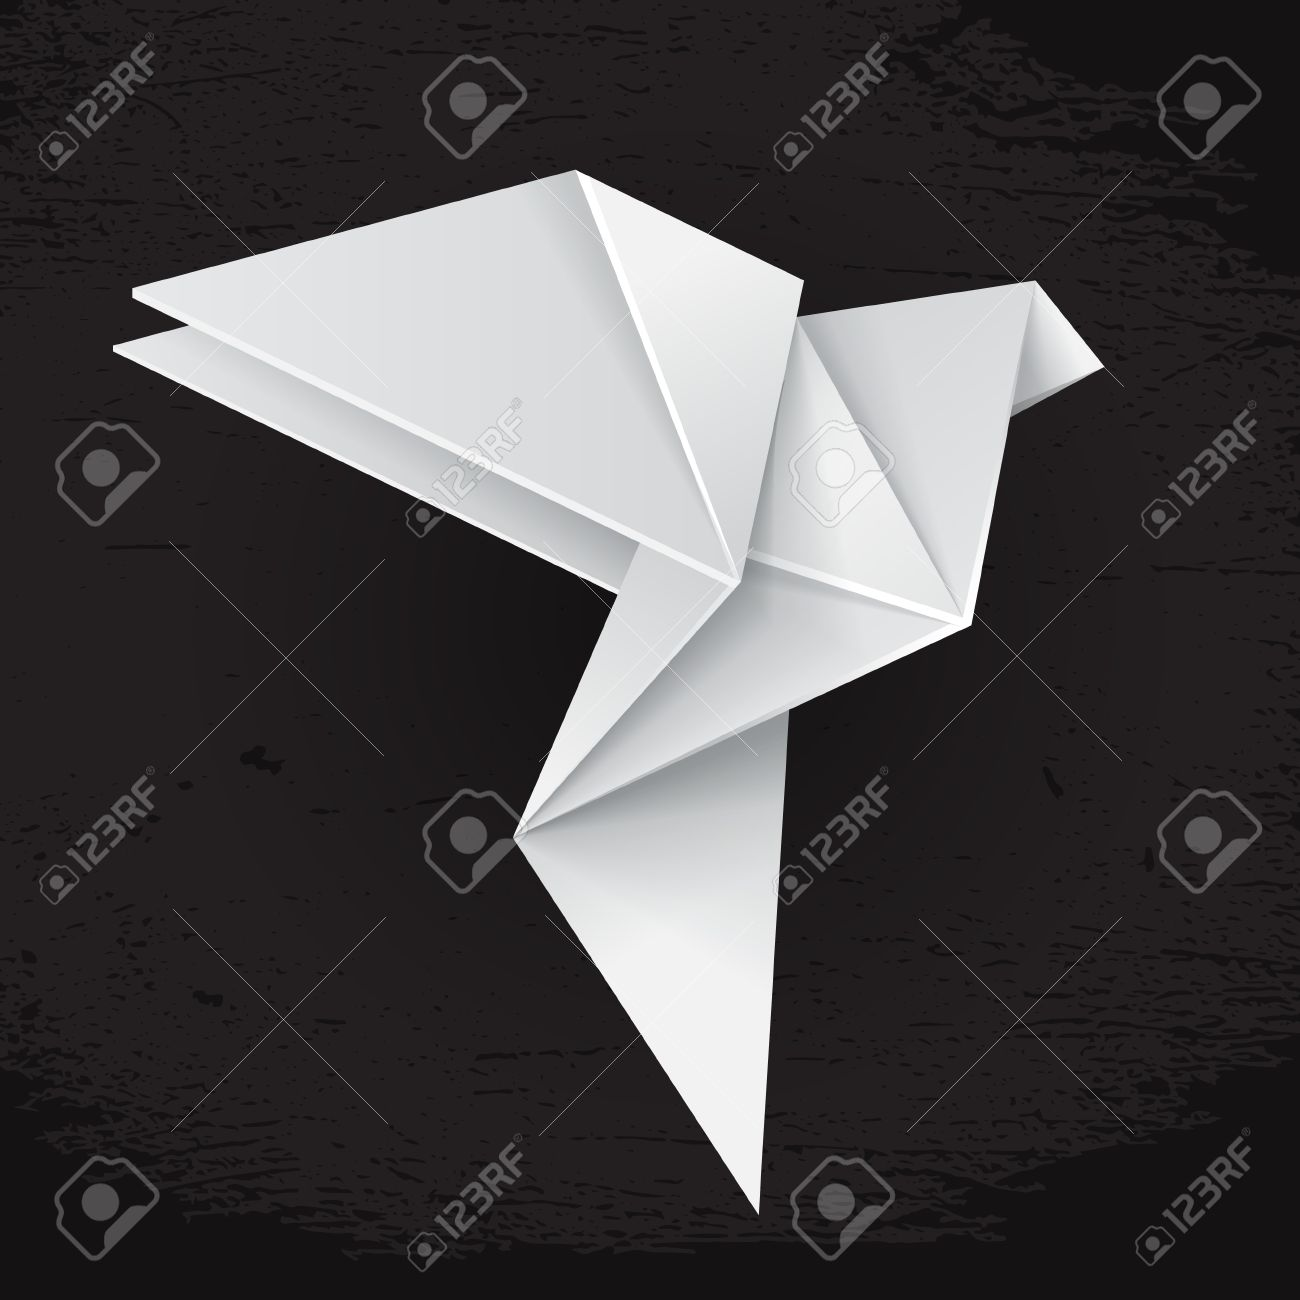 White origami paper dove on black grunge background sign of white origami paper dove on black grunge background sign of peace stock vector 31506187 jeuxipadfo Gallery